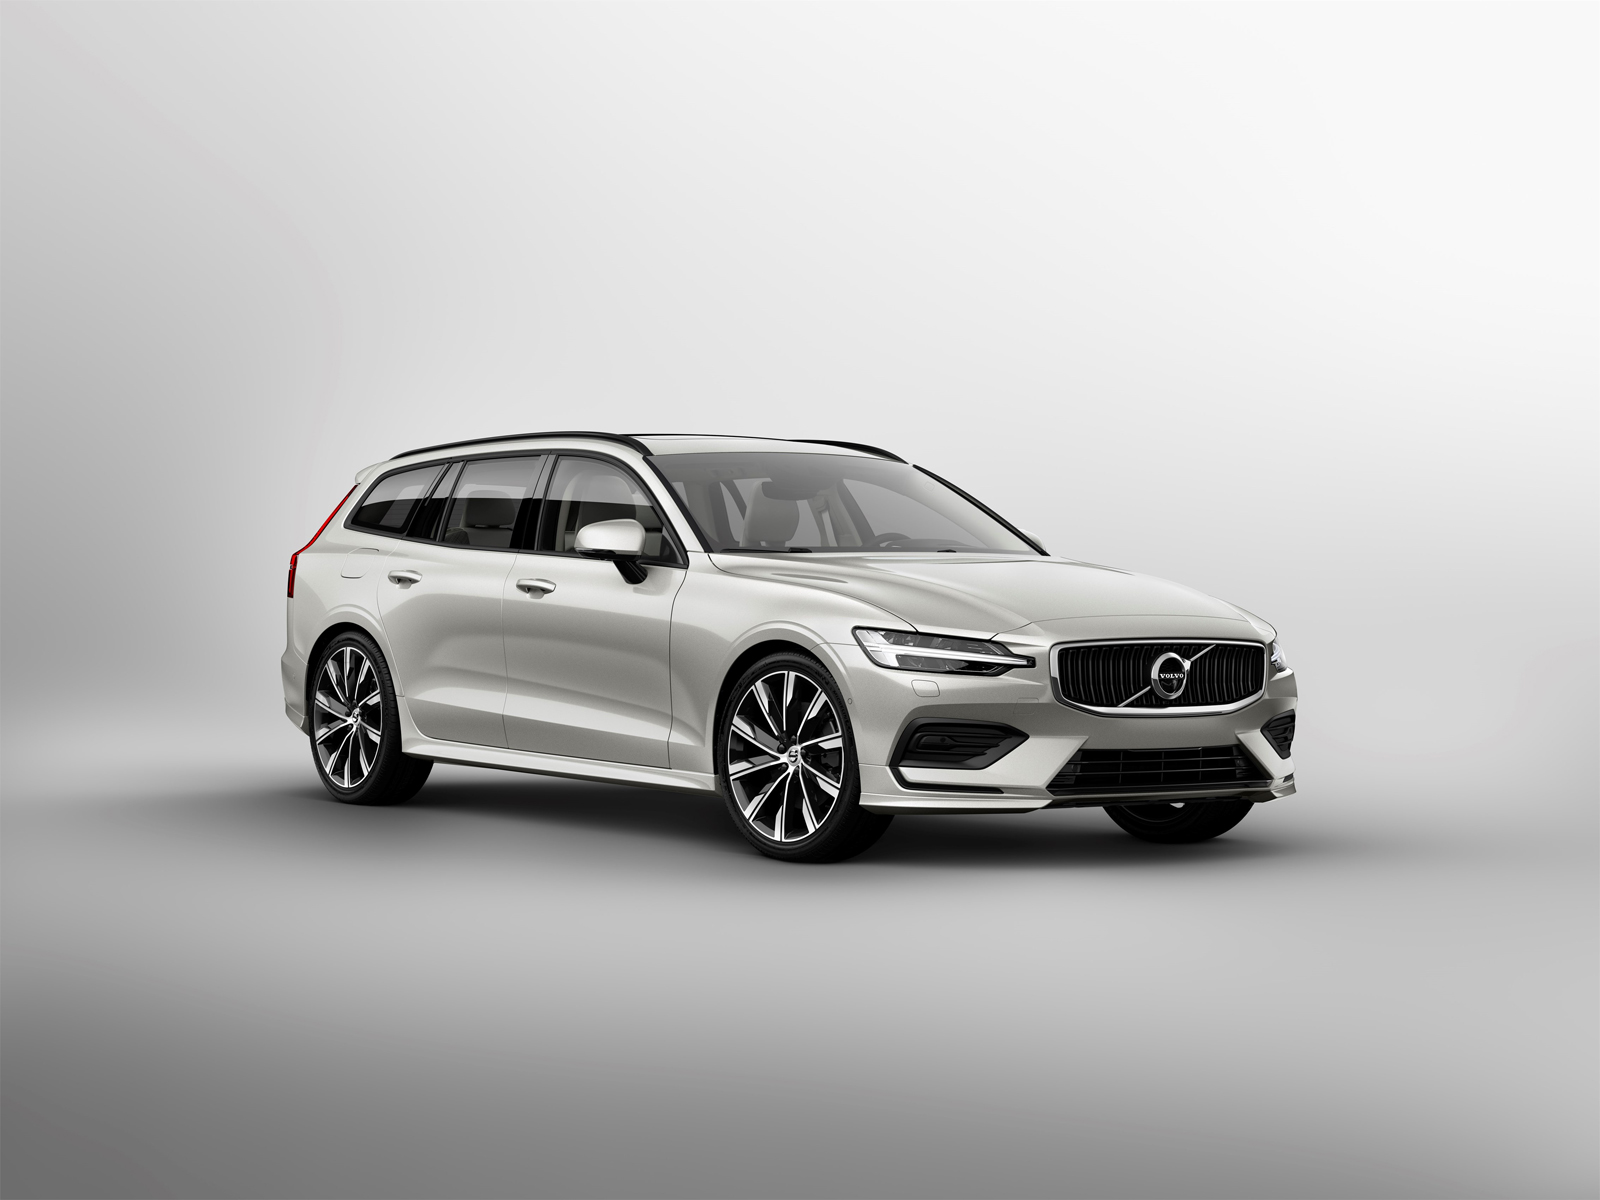 new volvo v60 arrives with stellar looks available phev powertrains news. Black Bedroom Furniture Sets. Home Design Ideas